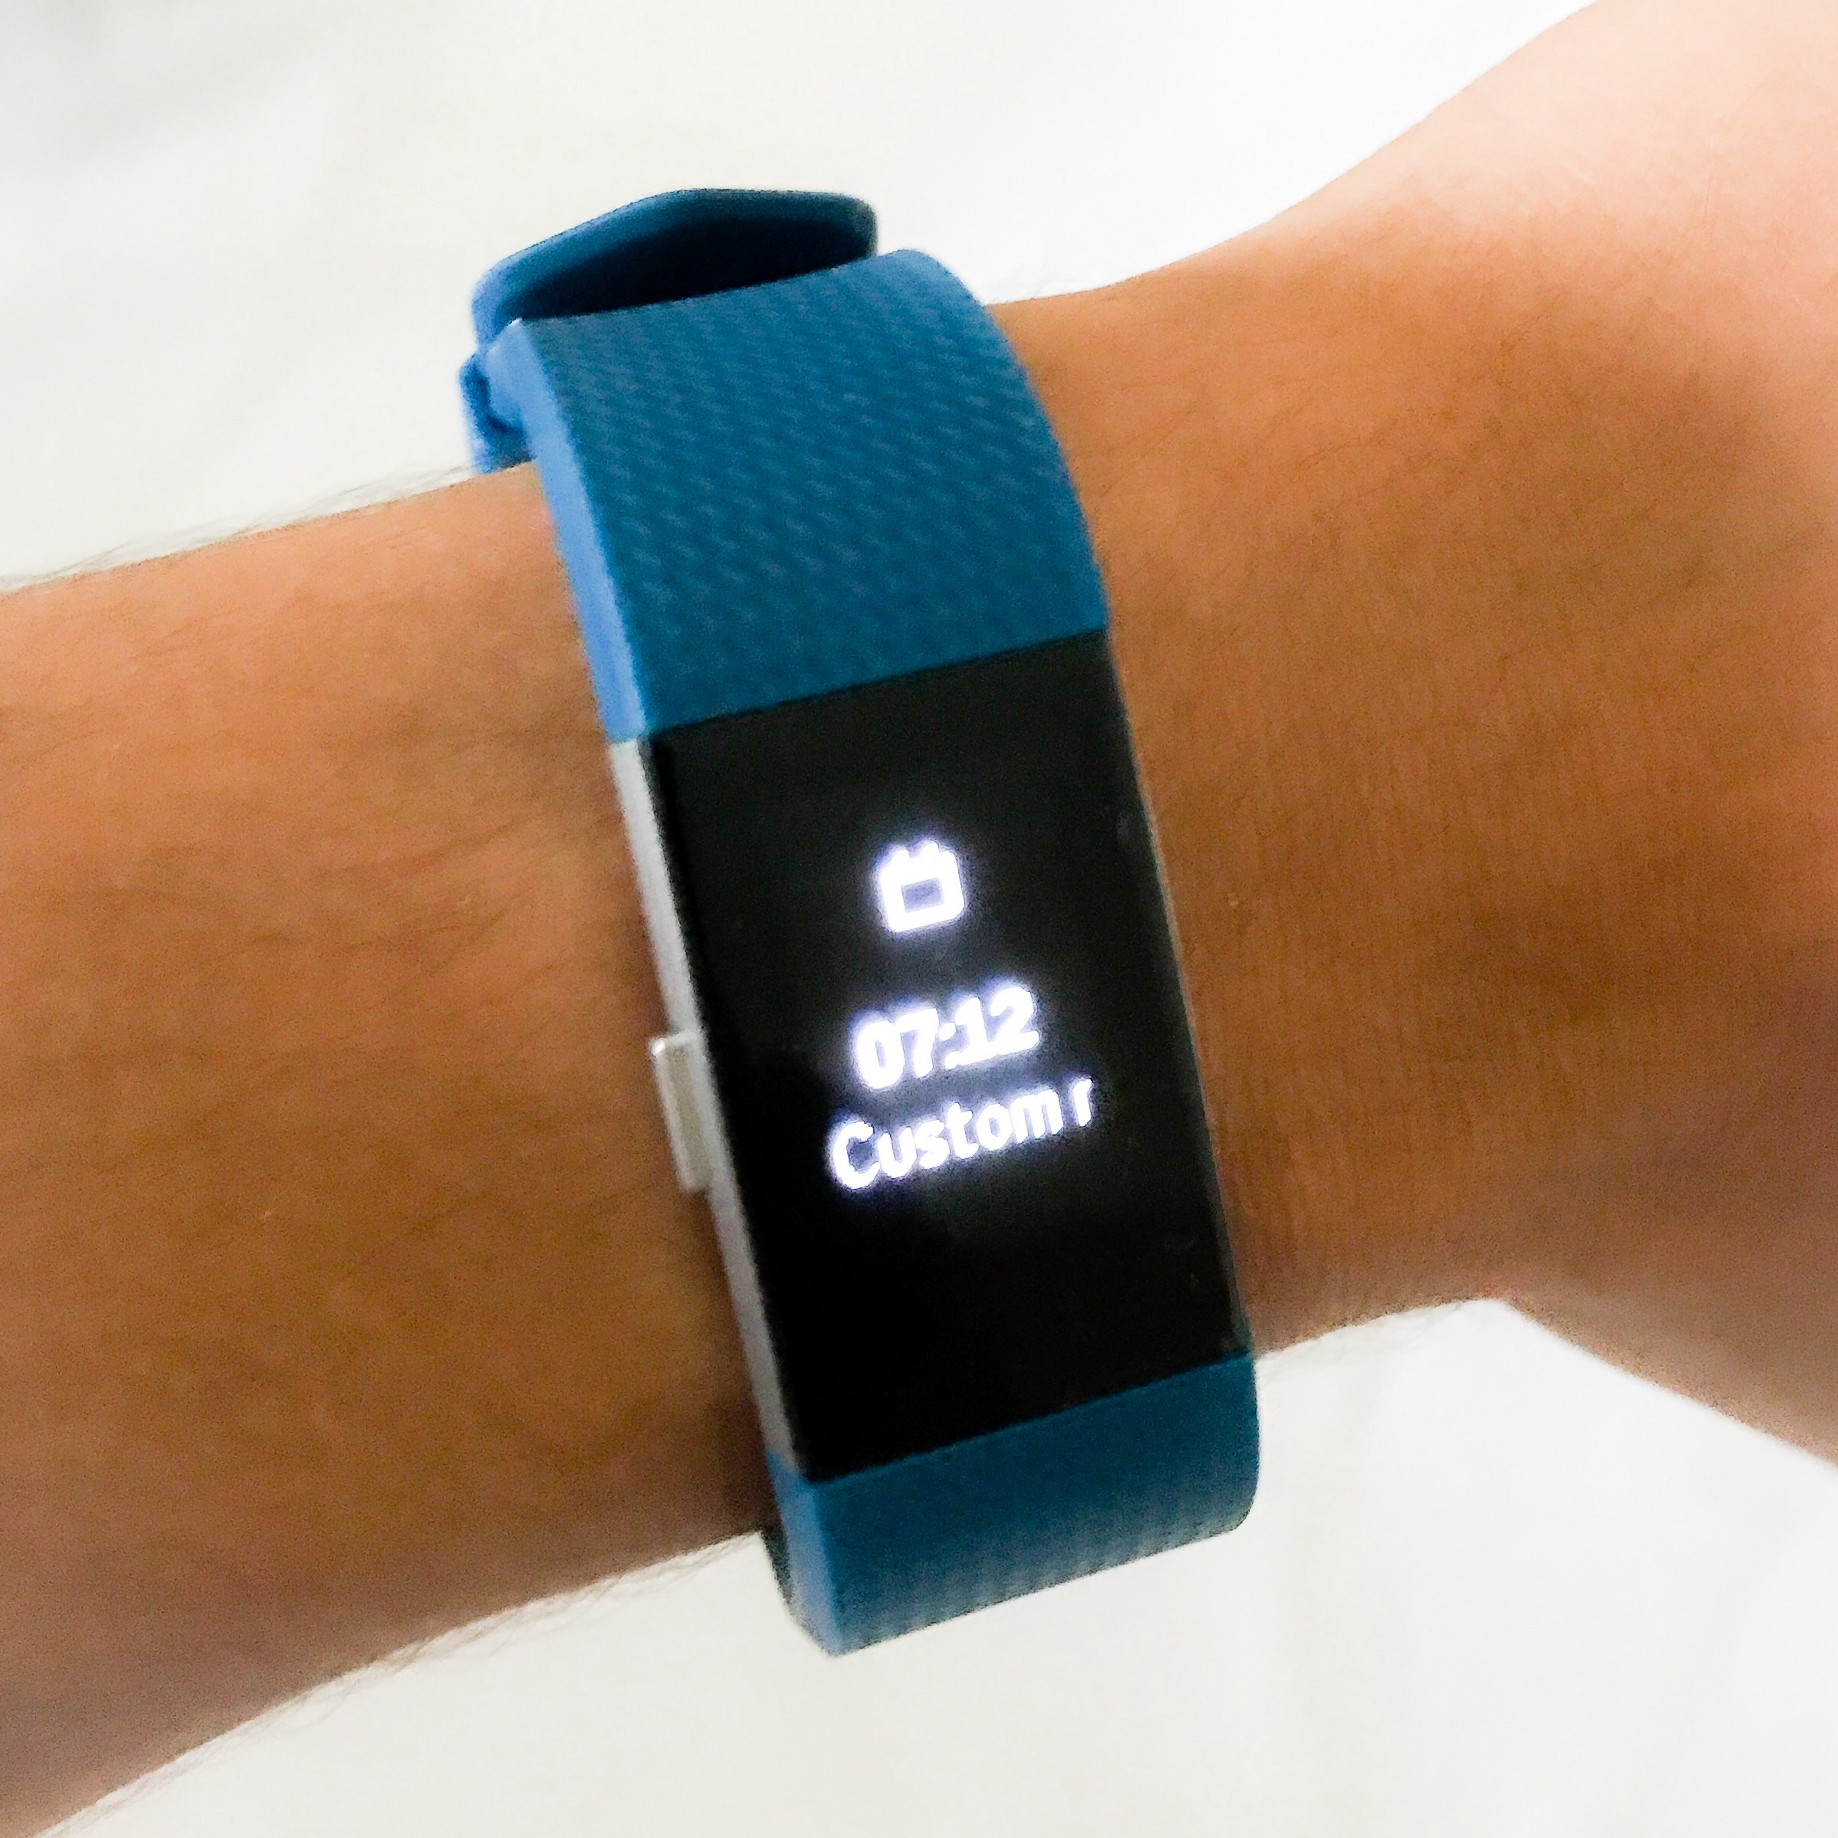 Finally, custom push notifications on Fitbit wearables without hacking